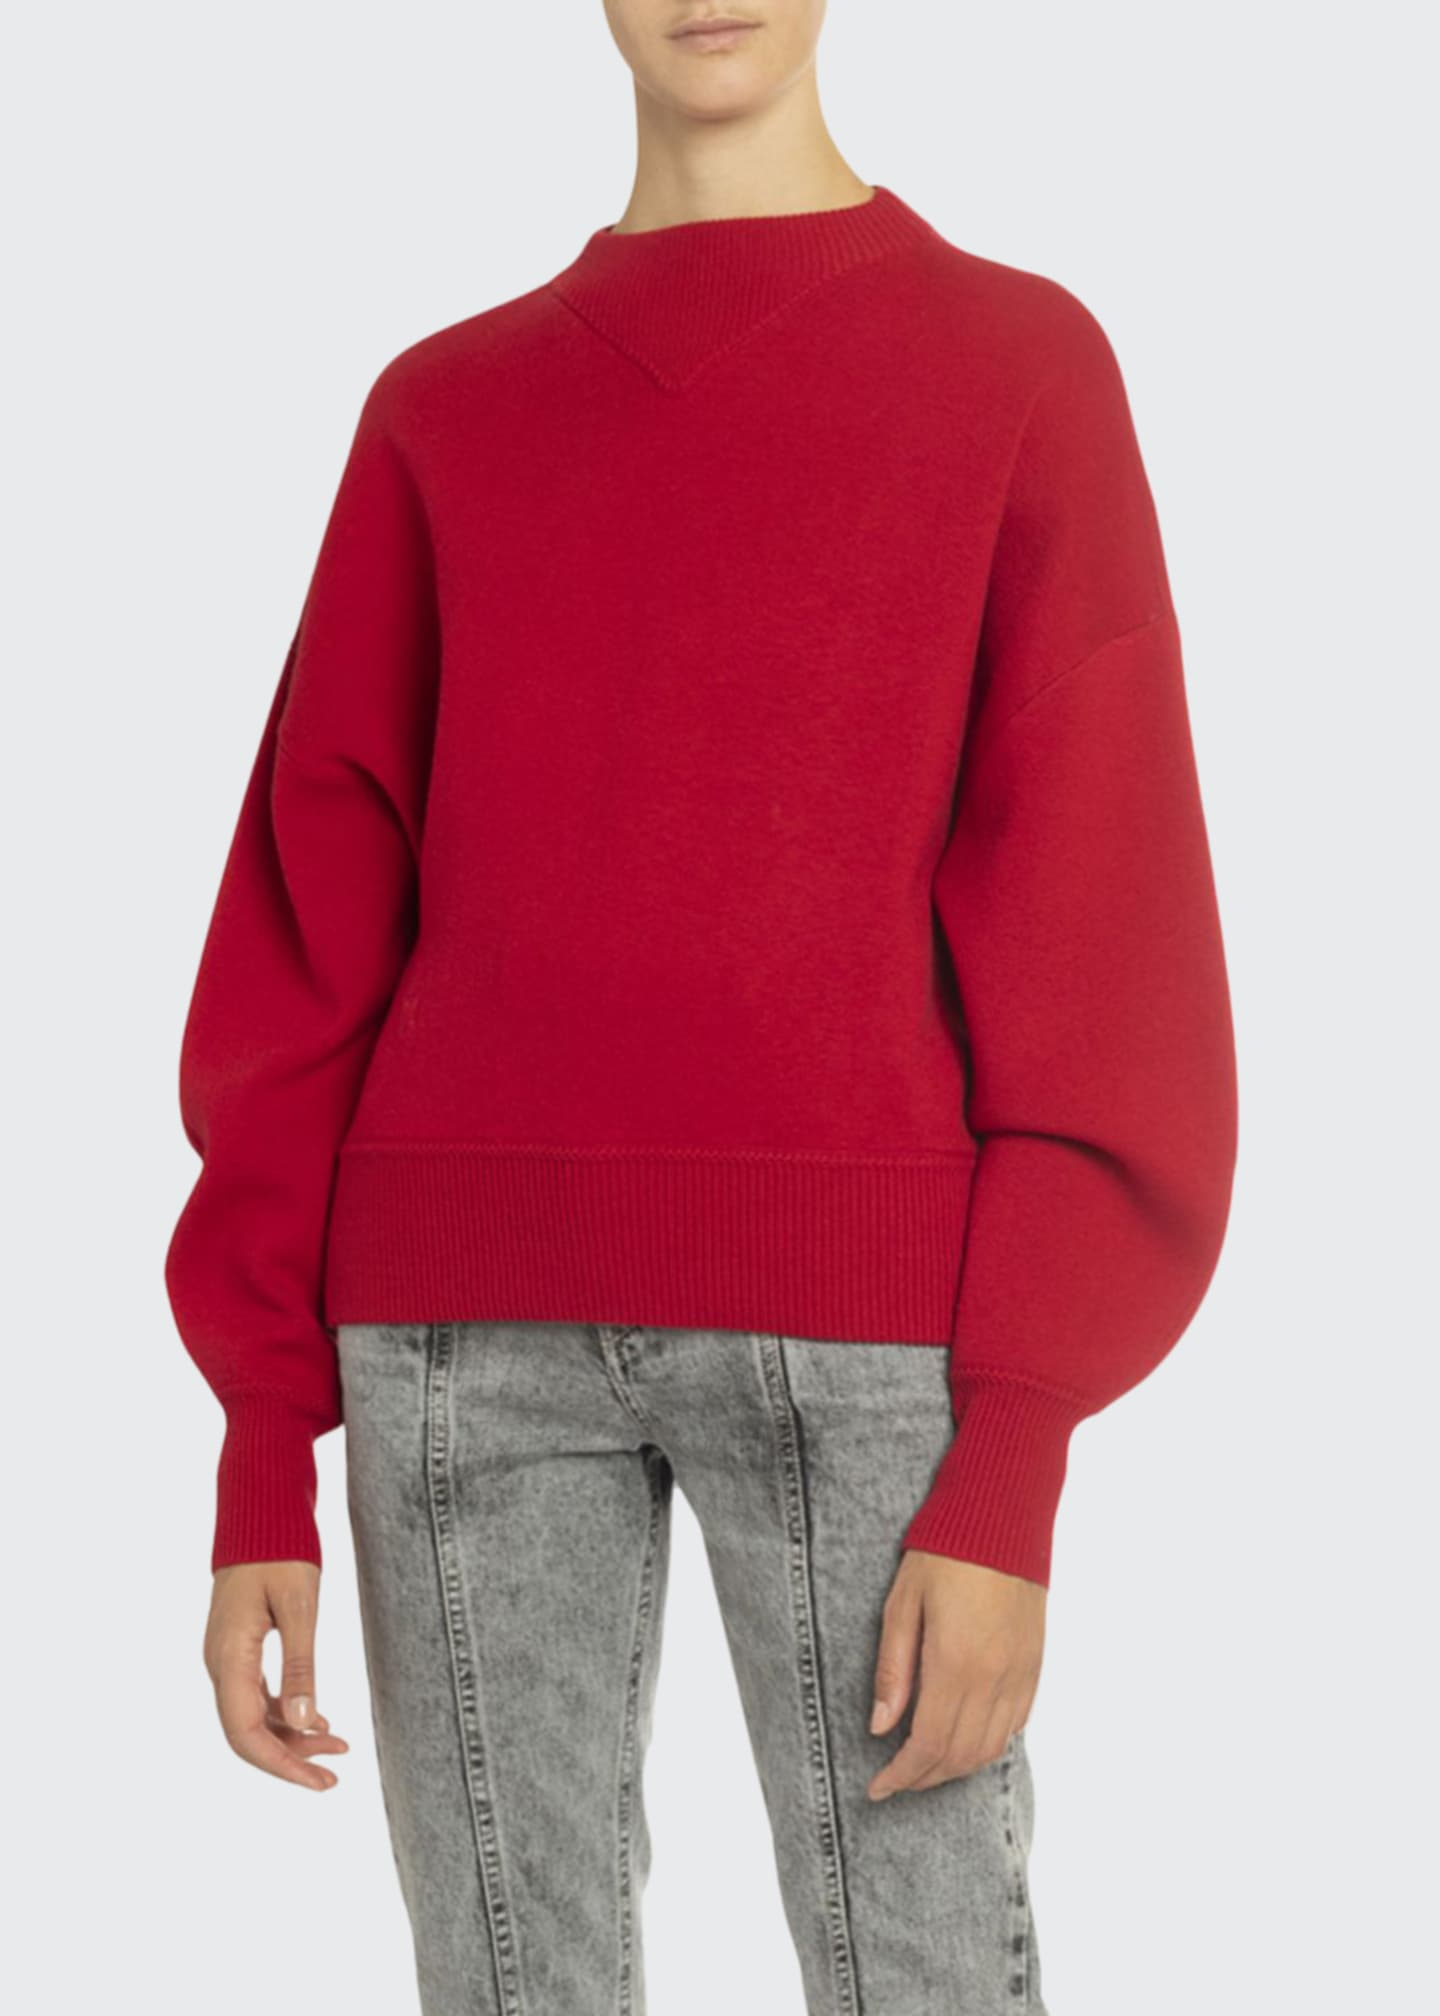 Etoile Isabel Marant Karl Crewneck Pullover Sweater